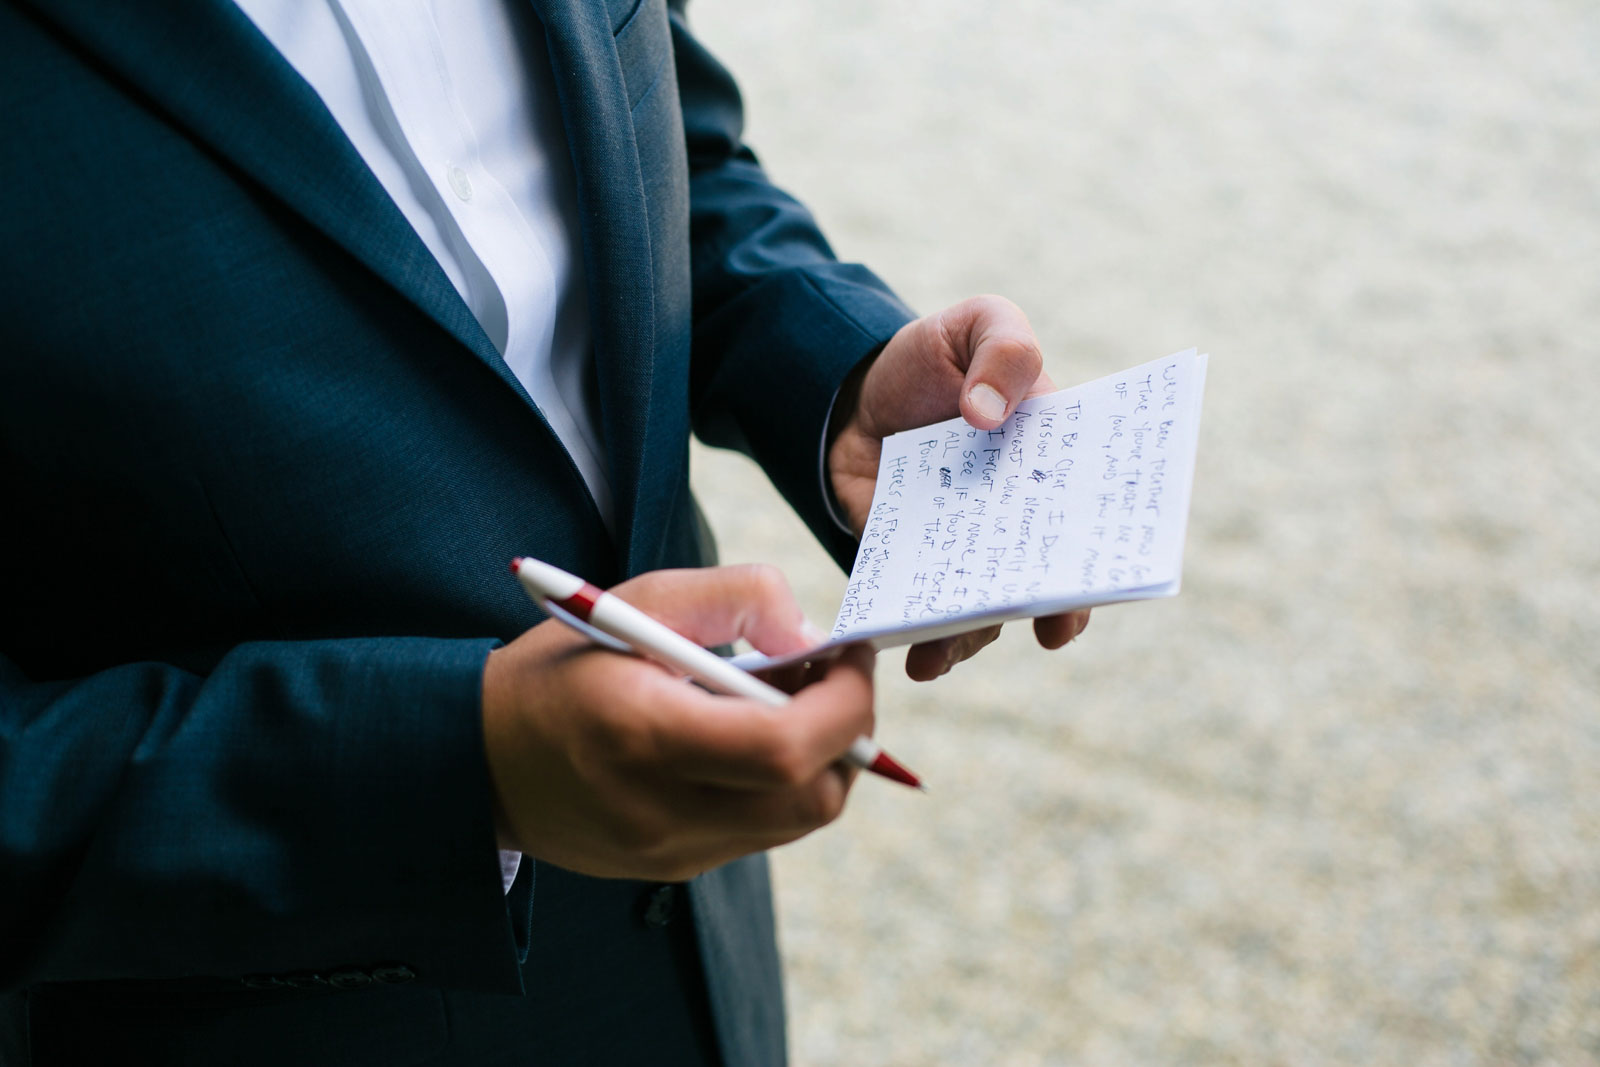 Detail of groom's hand-written vows, groom finishing writing his vows before wedding ceremony.